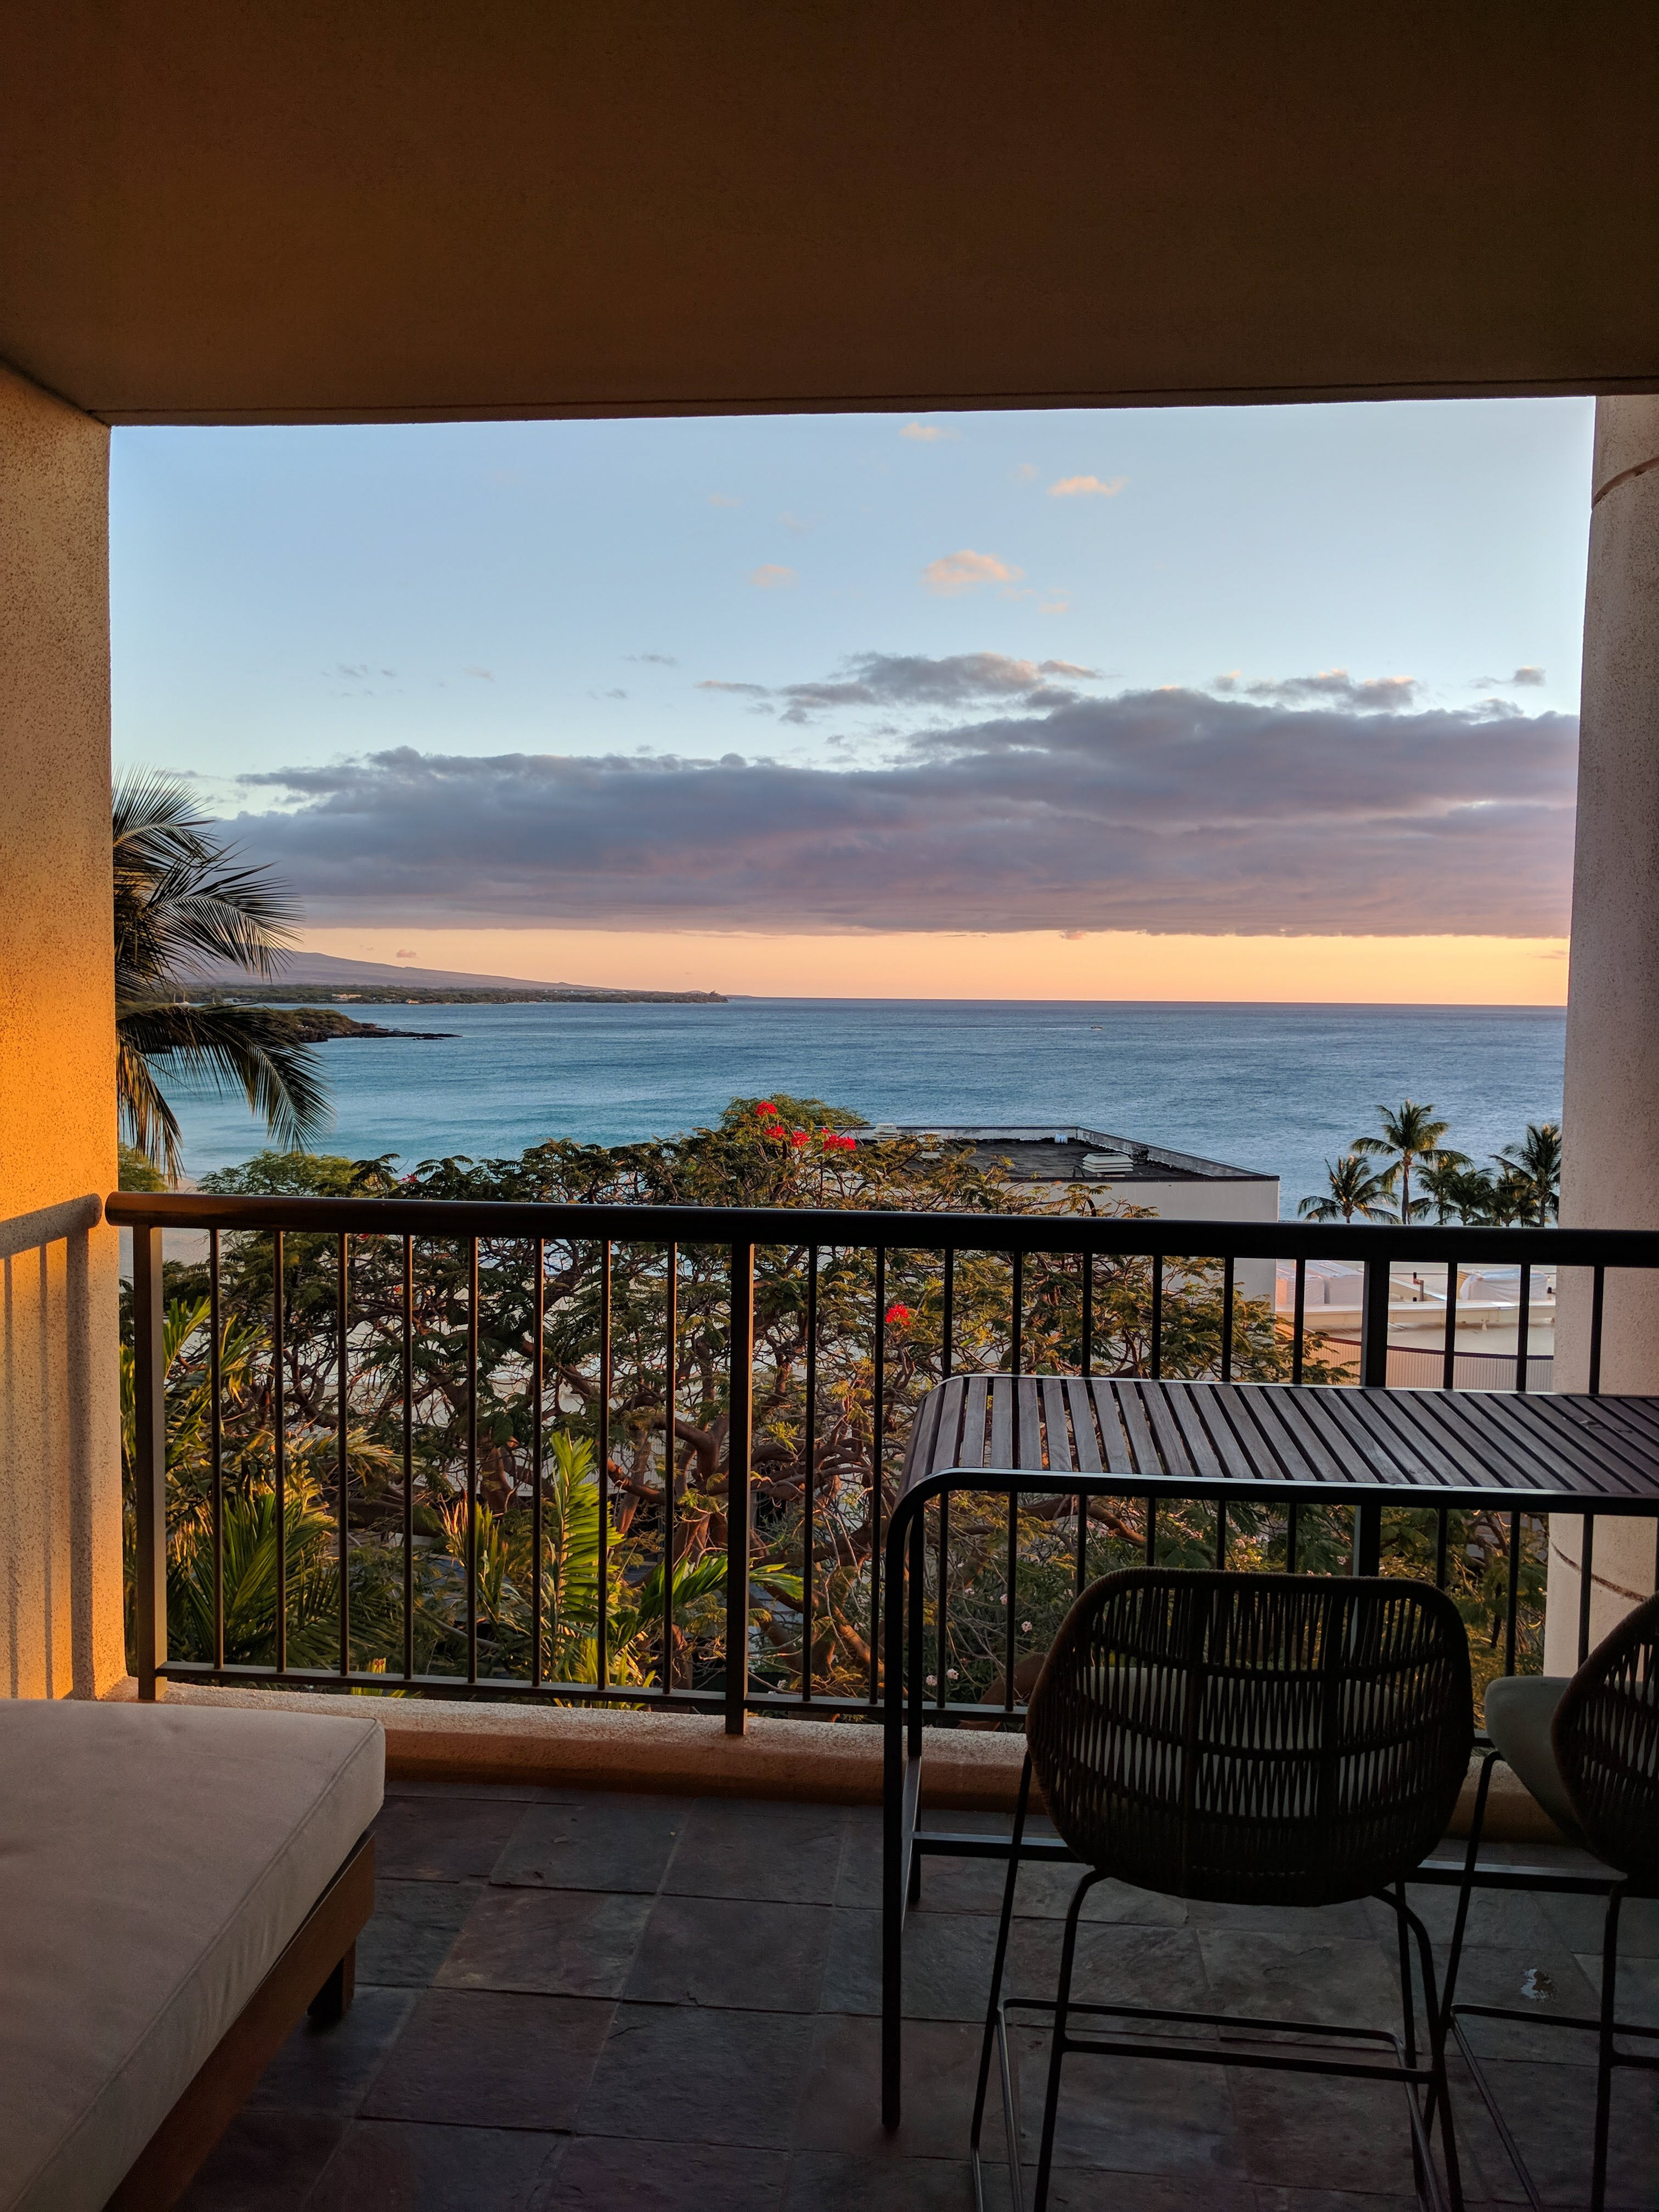 View from the lanai in a 6th floor ocean view room